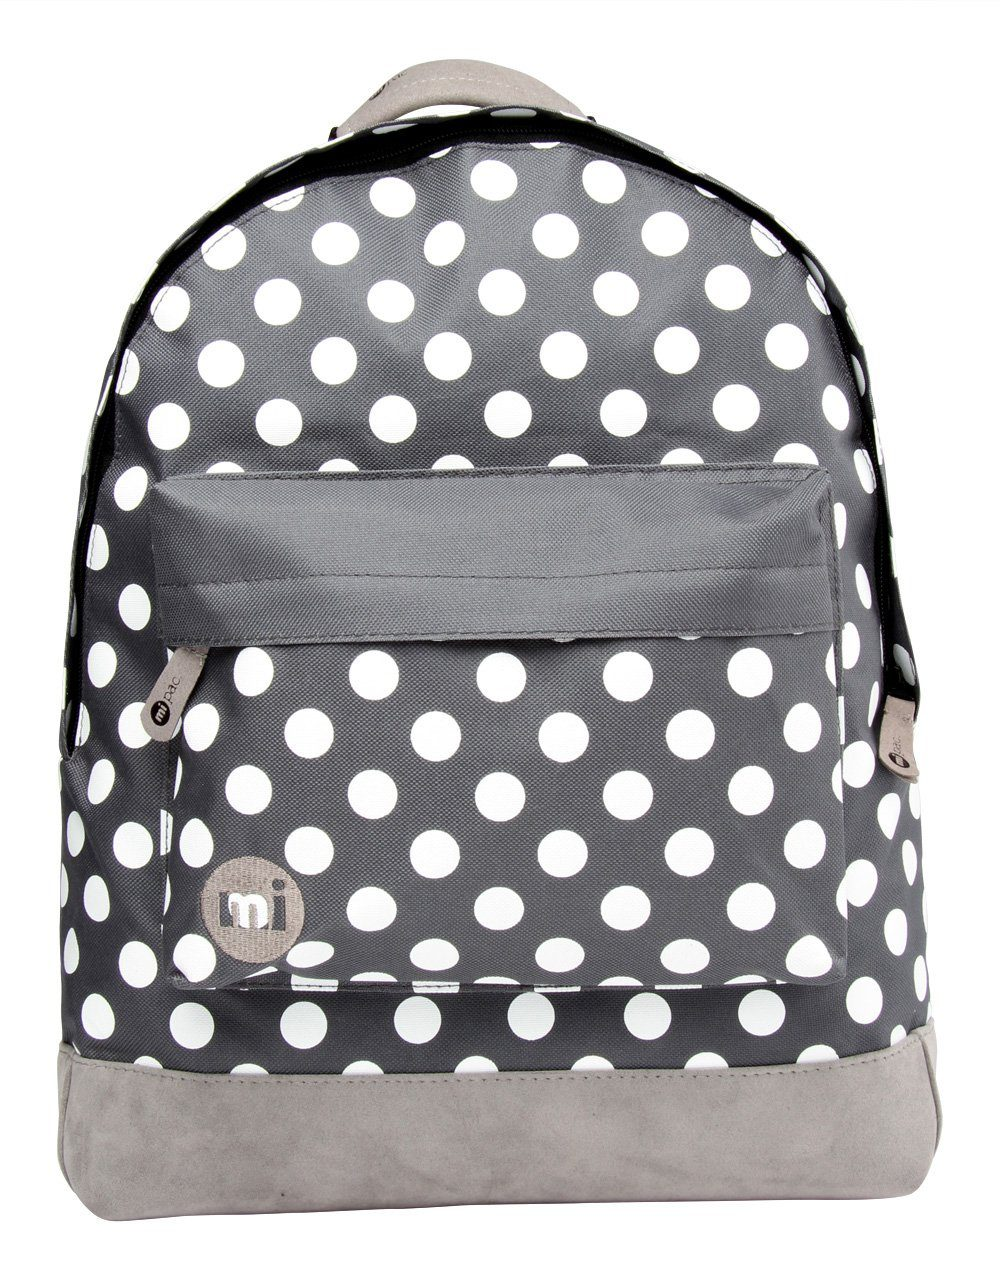 mi pac. Rucksack mit Laptopfach, »Backpack, All Polka Charcoal White«